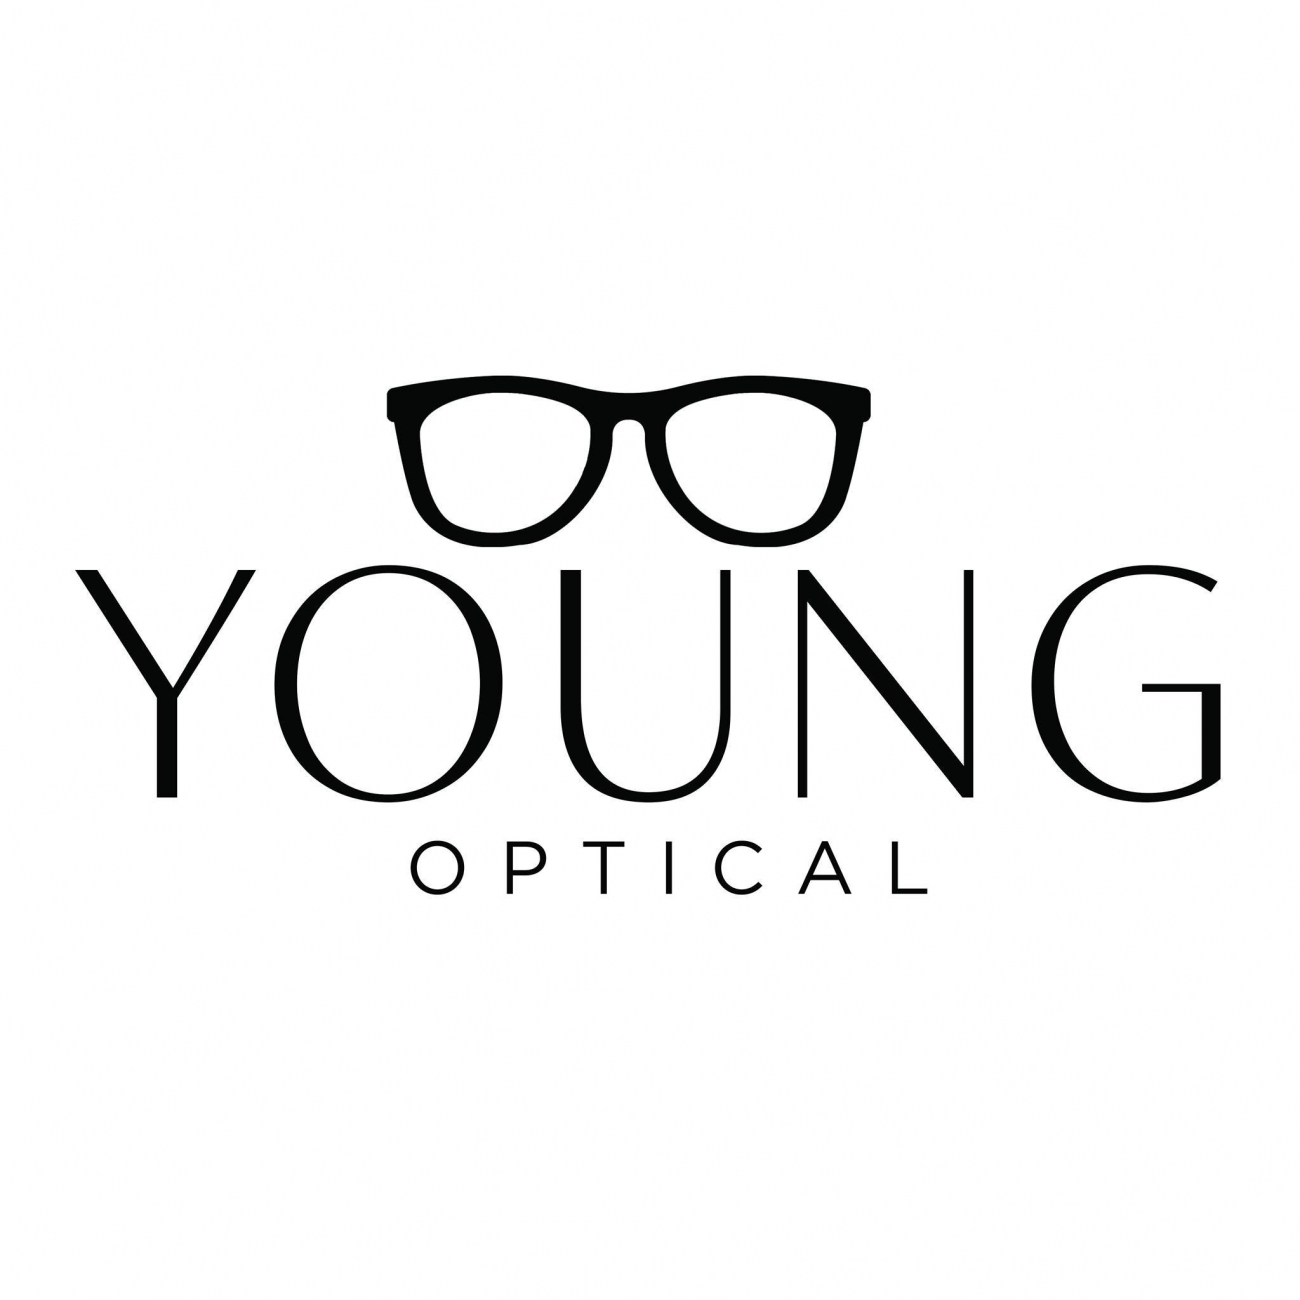 Mắt kính nữ Youngtopical